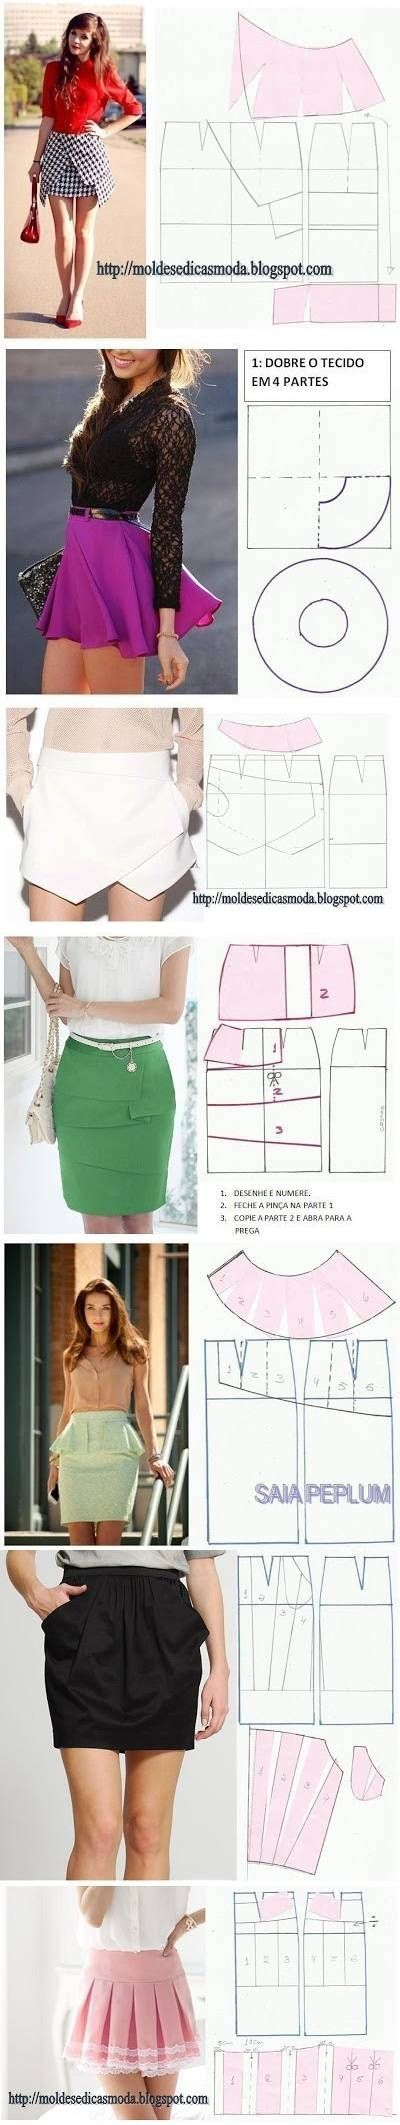 DIY Stylish Skirts Pictures, Photos, and Images for Facebook, Tumblr, Pinterest, and Twitter